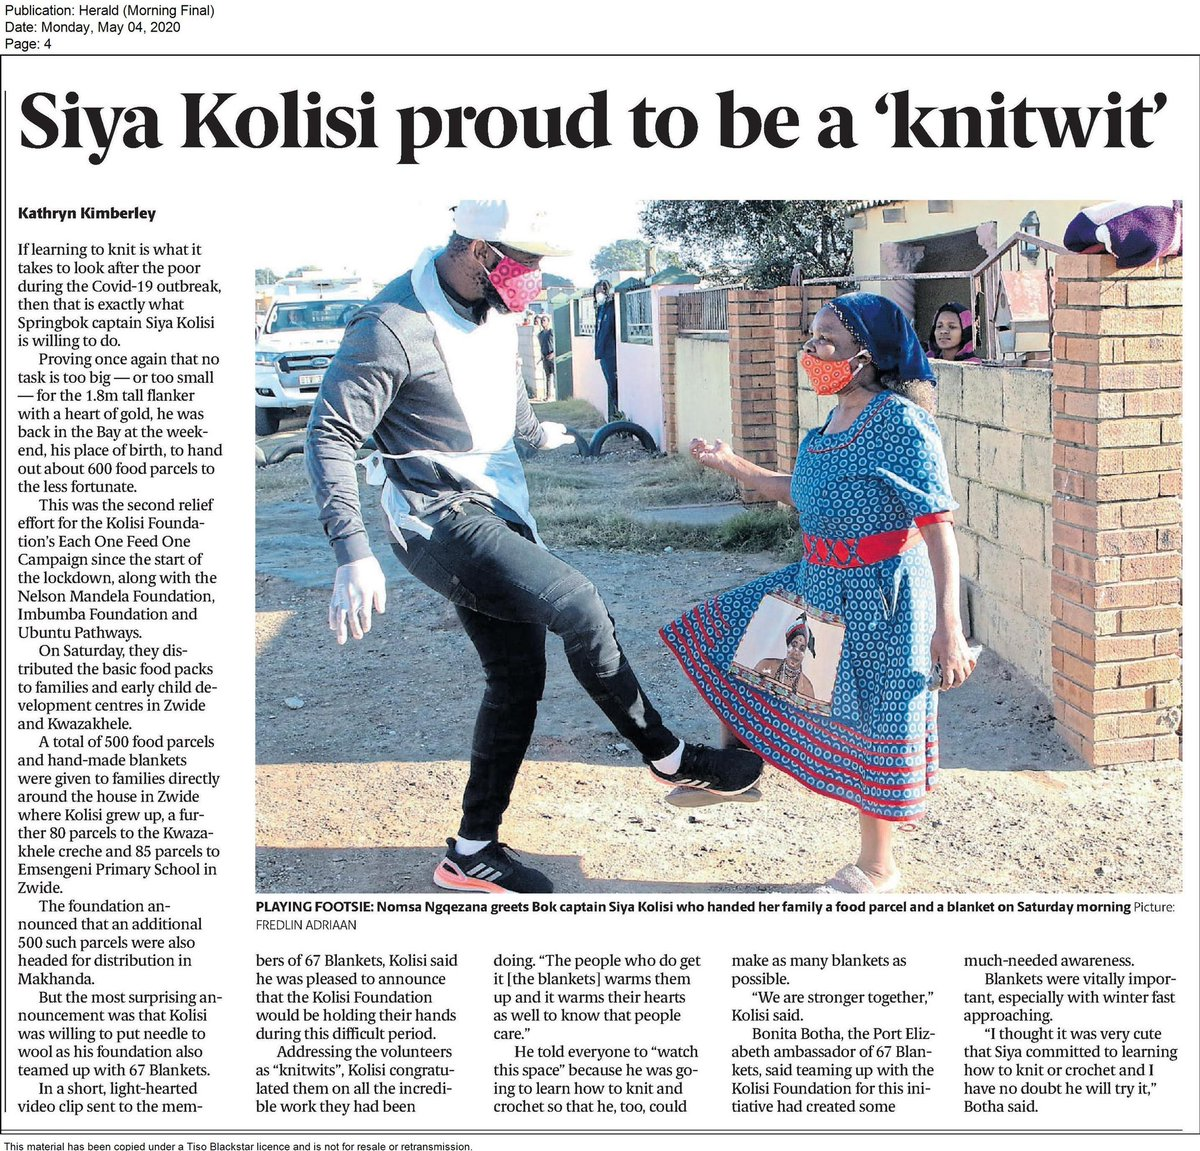 Thank you @HeraldPE for #blanketcoverage @67blankets #KnitWits are thrilled to be working with our National hero @siya_kolisi_the_bear @rachel_kolisi and @kolisi_foundation to assist people in need especially during this #covid19 crisis. #blankets #charity #crochet #knitting